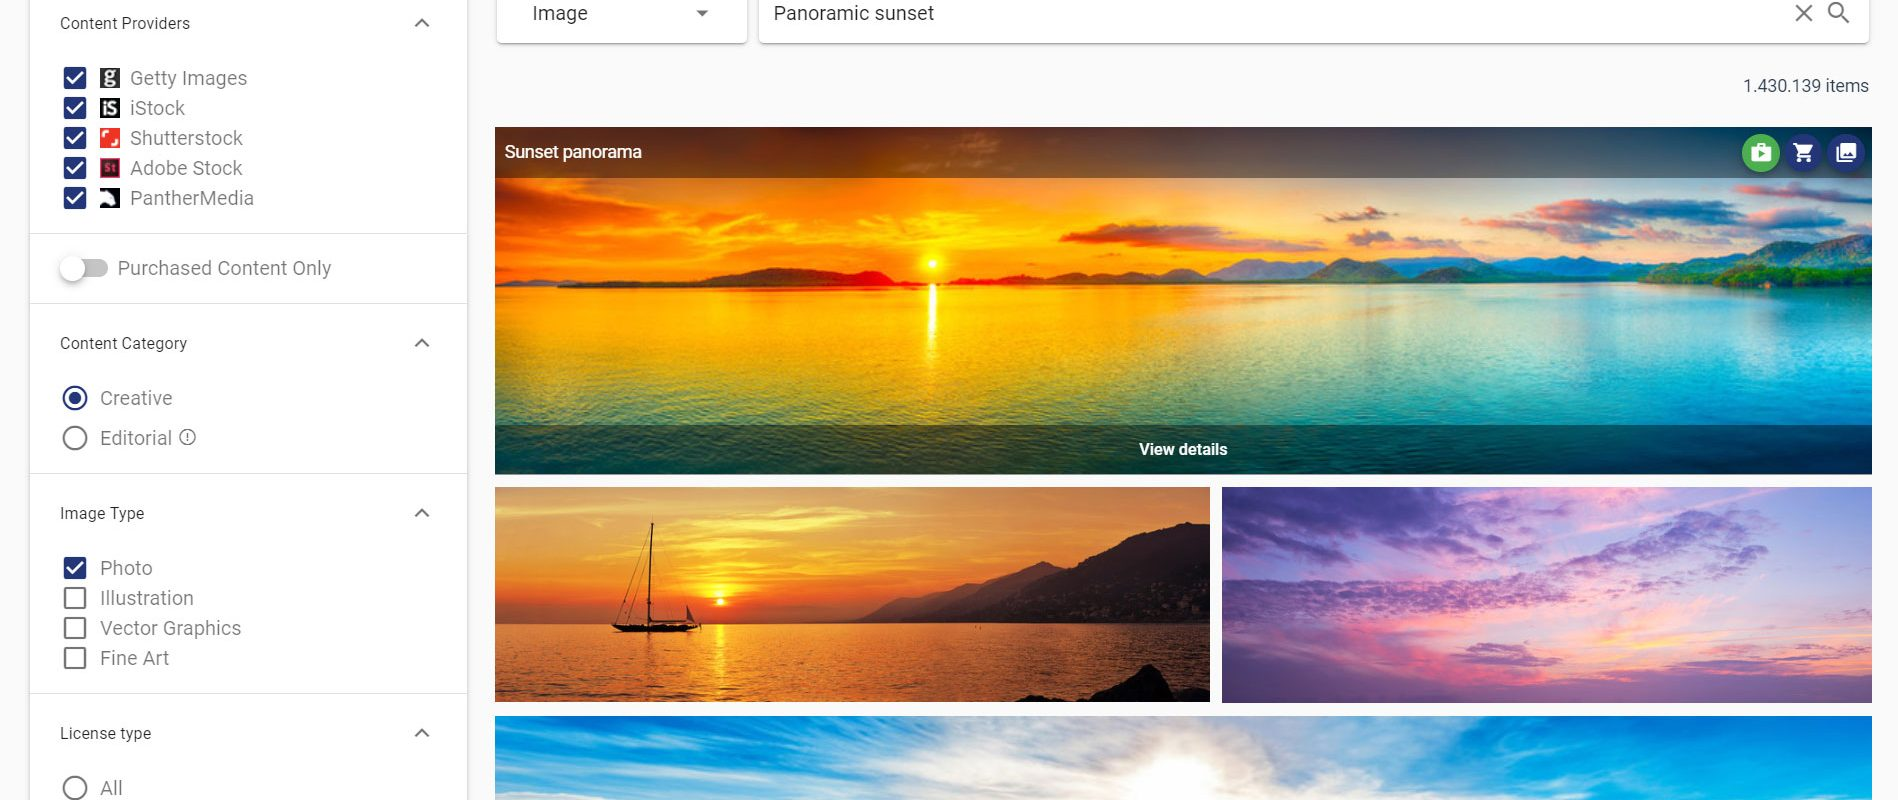 Search once, find everything - it does not matter if you work with Getty Images, iStock, Adobe Stock, Shutterstock, PantherMedia or other sources!